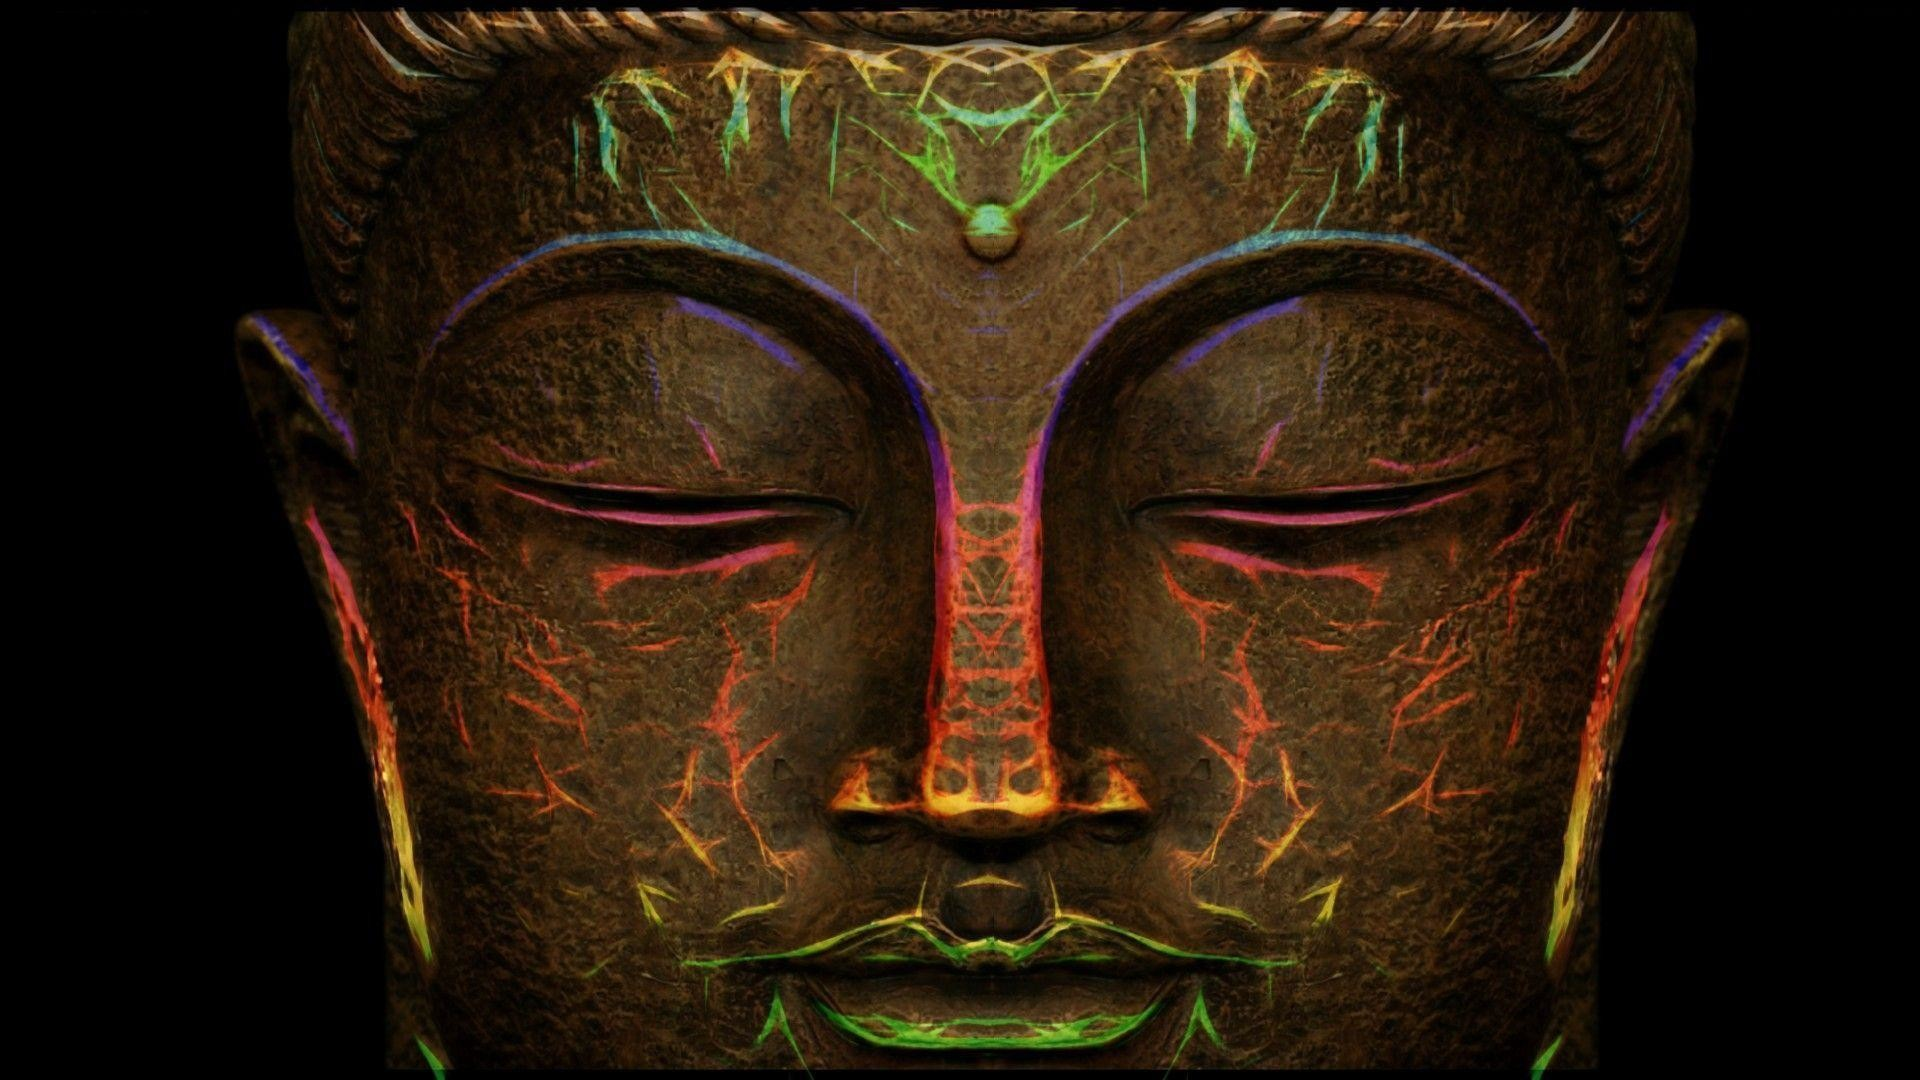 1920x1080 Images For Trippy Buddha Wallpaper